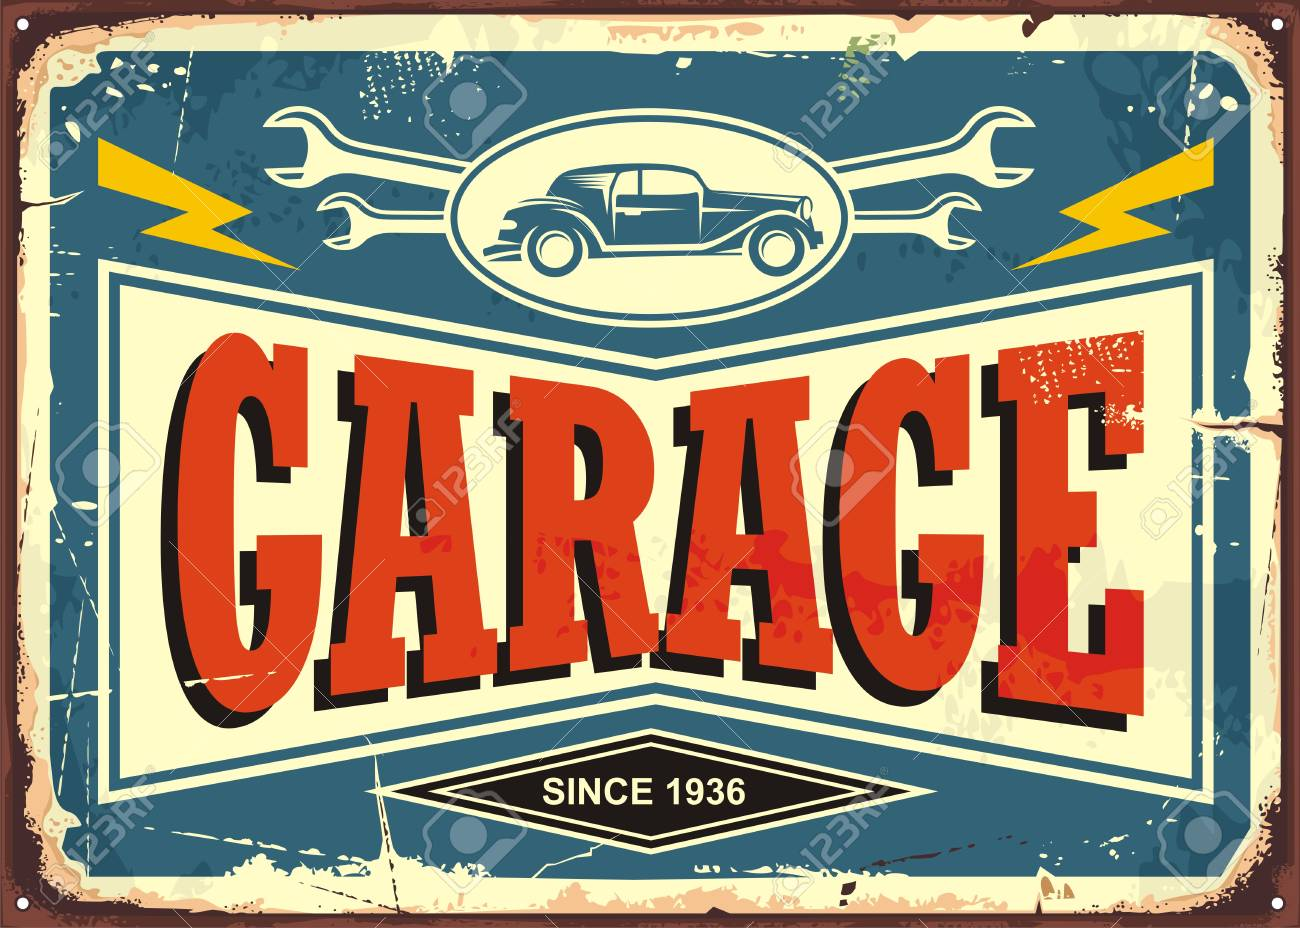 Vintage Garage Sign With Car Image And Wrench Tools Royalty Free ...